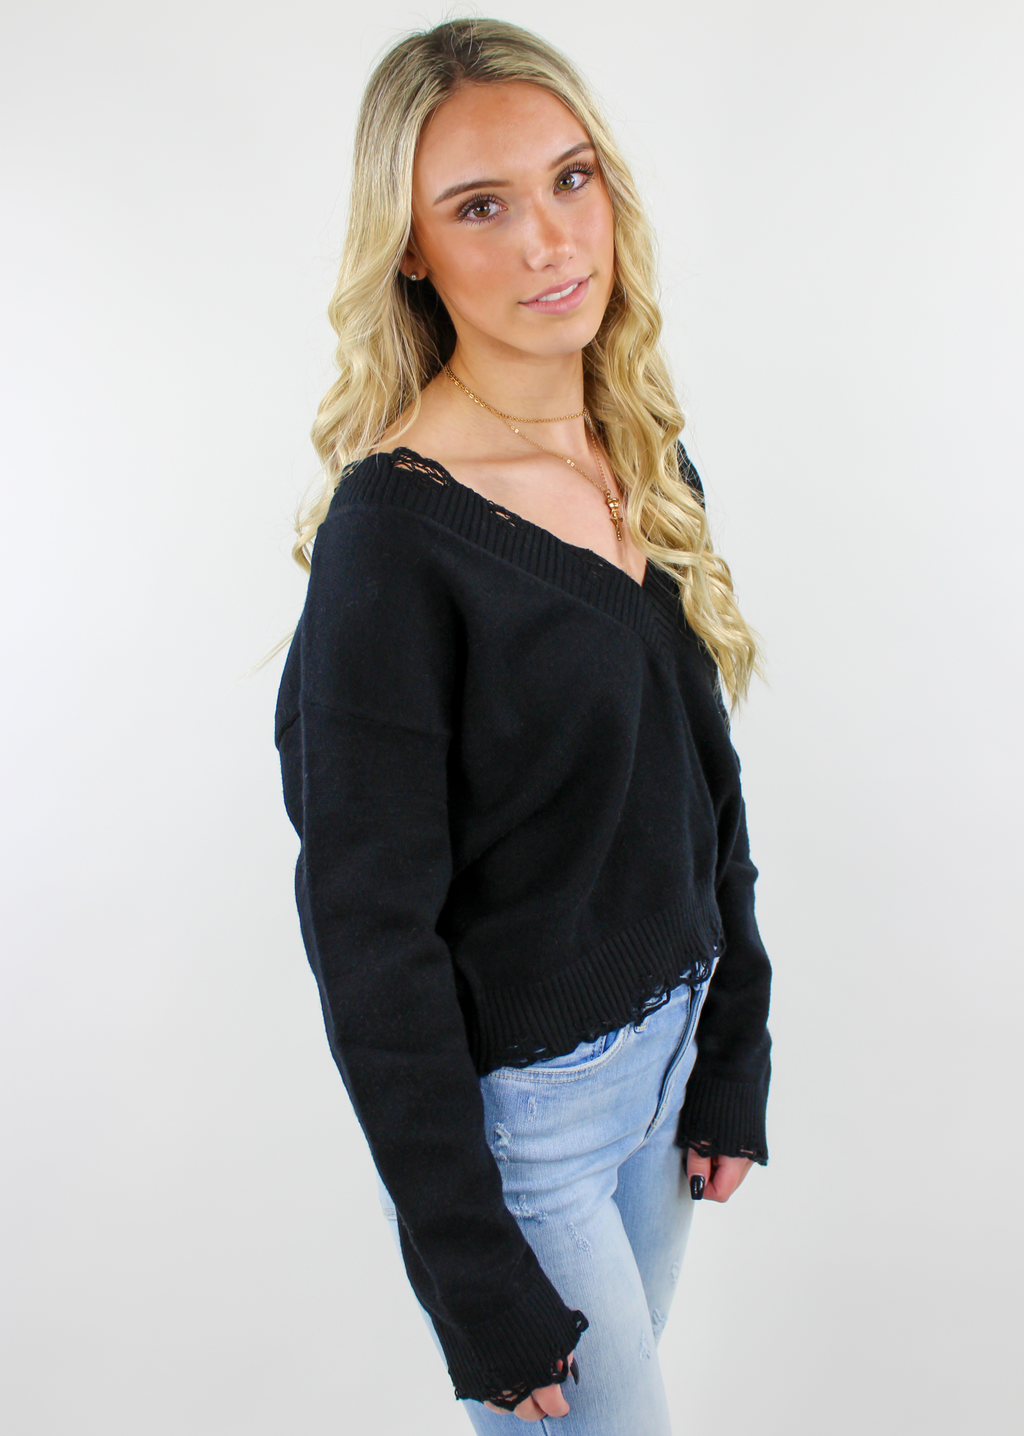 The Sweet Life Sweater ★ Black - Rock N Rags